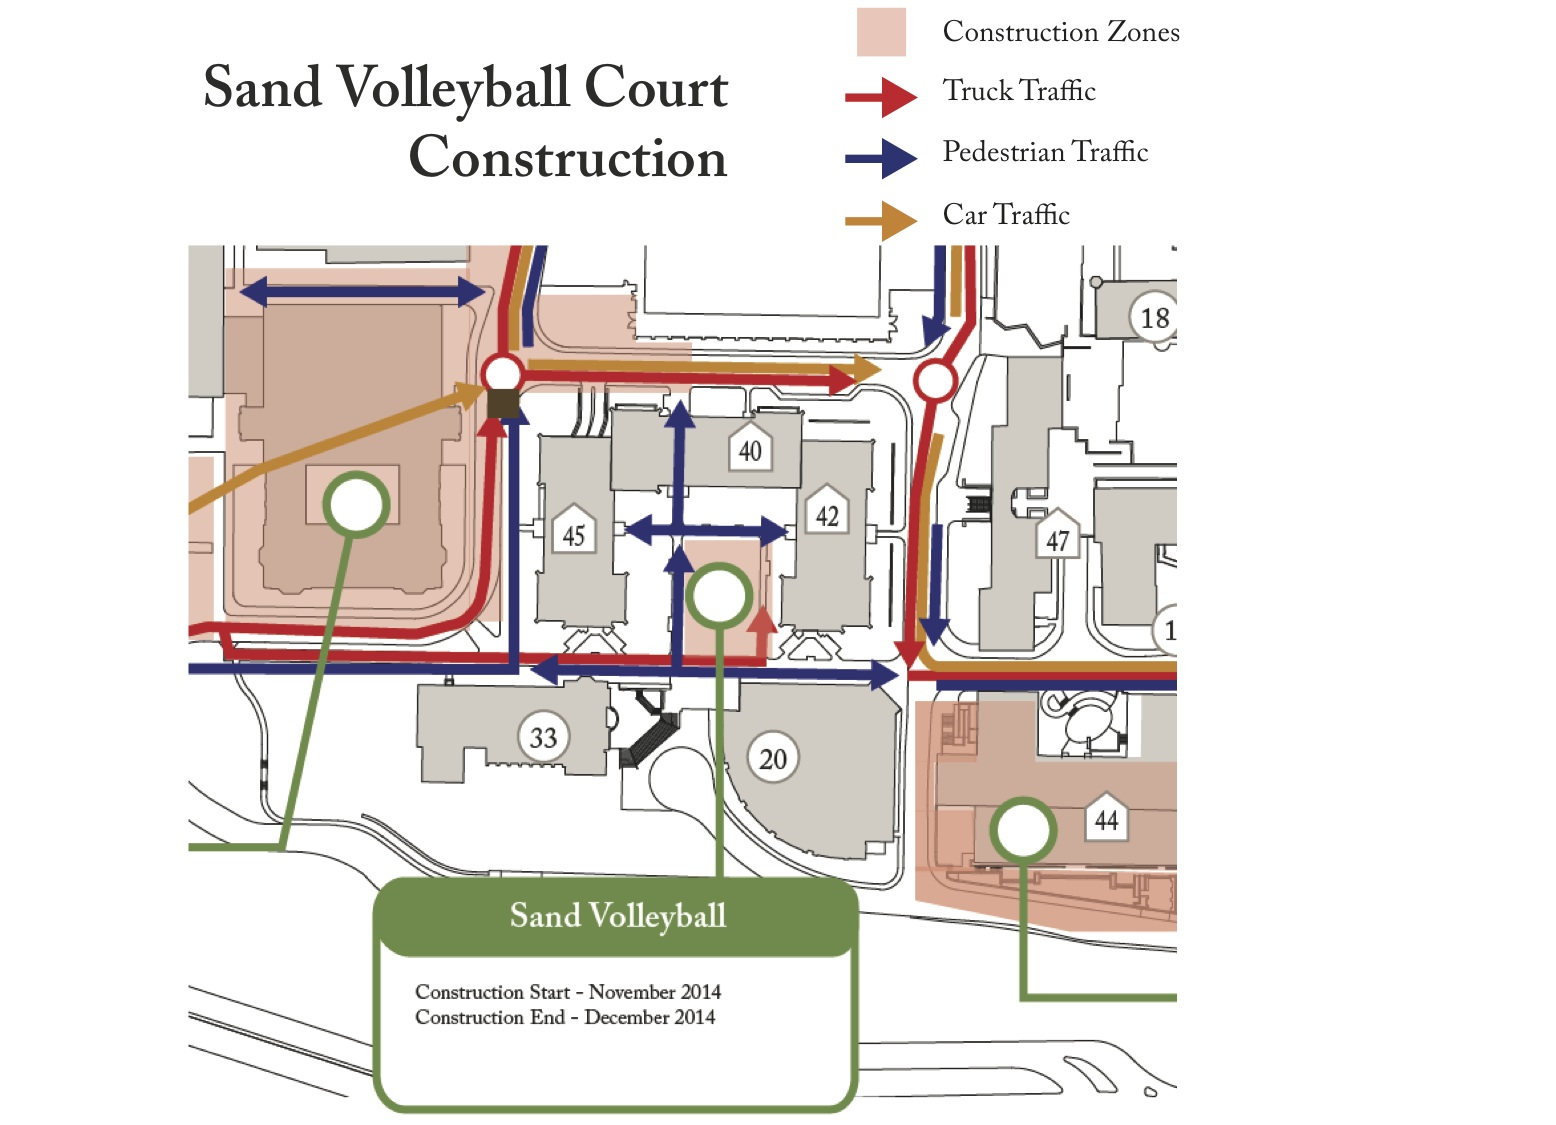 beach volleyball court diagram directv connection sand will enliven southwest quad master planning